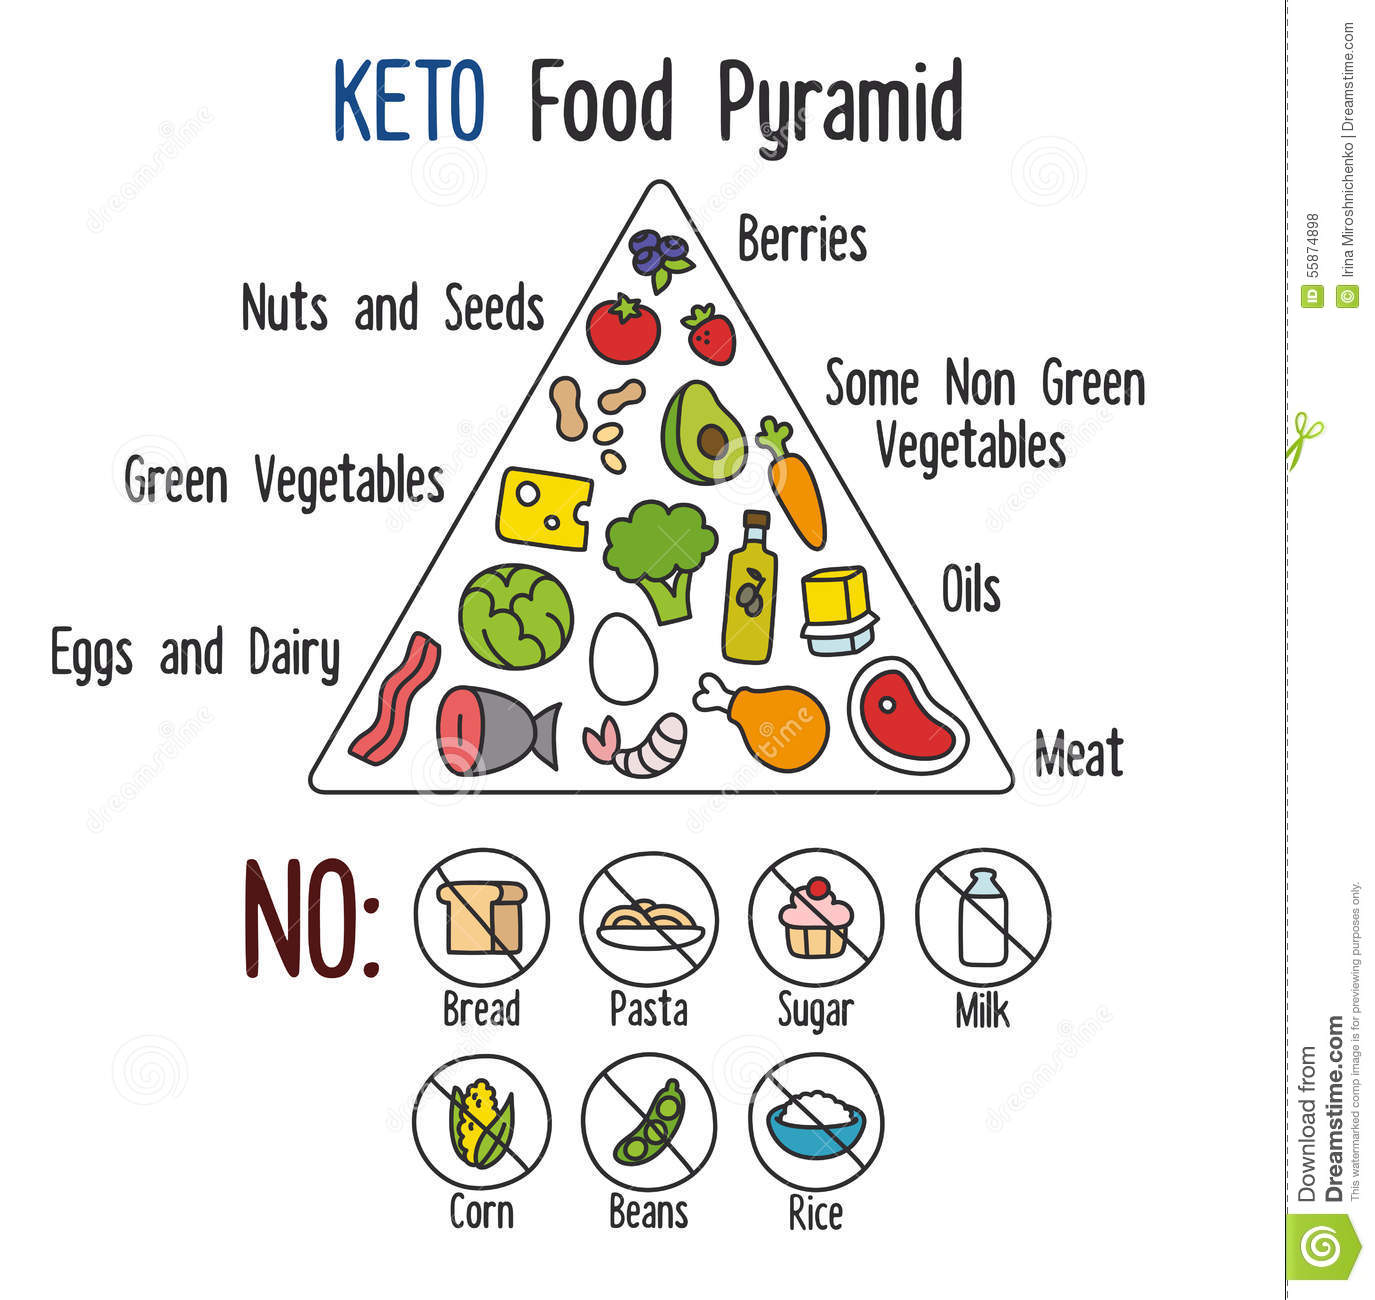 What Vitamin and Mineral Supplement Do You Need on Keto?